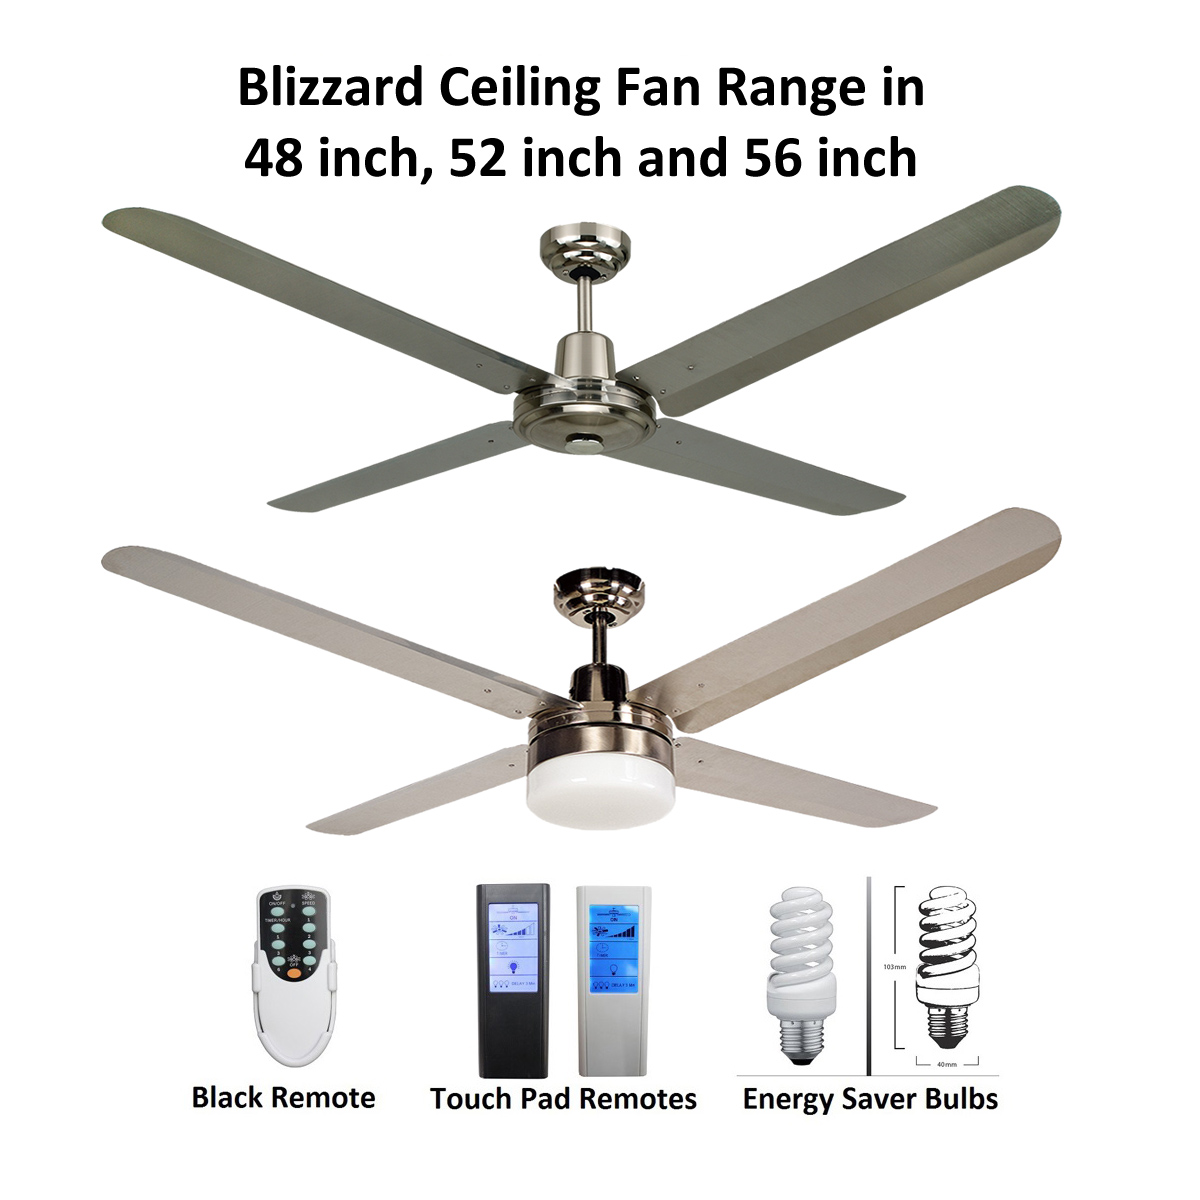 Blizzard 4 blade 316 marine grade stainless steel ceiling fan blizzard 4 blade 316 marine grade stainless steel ceiling fan aloadofball Choice Image